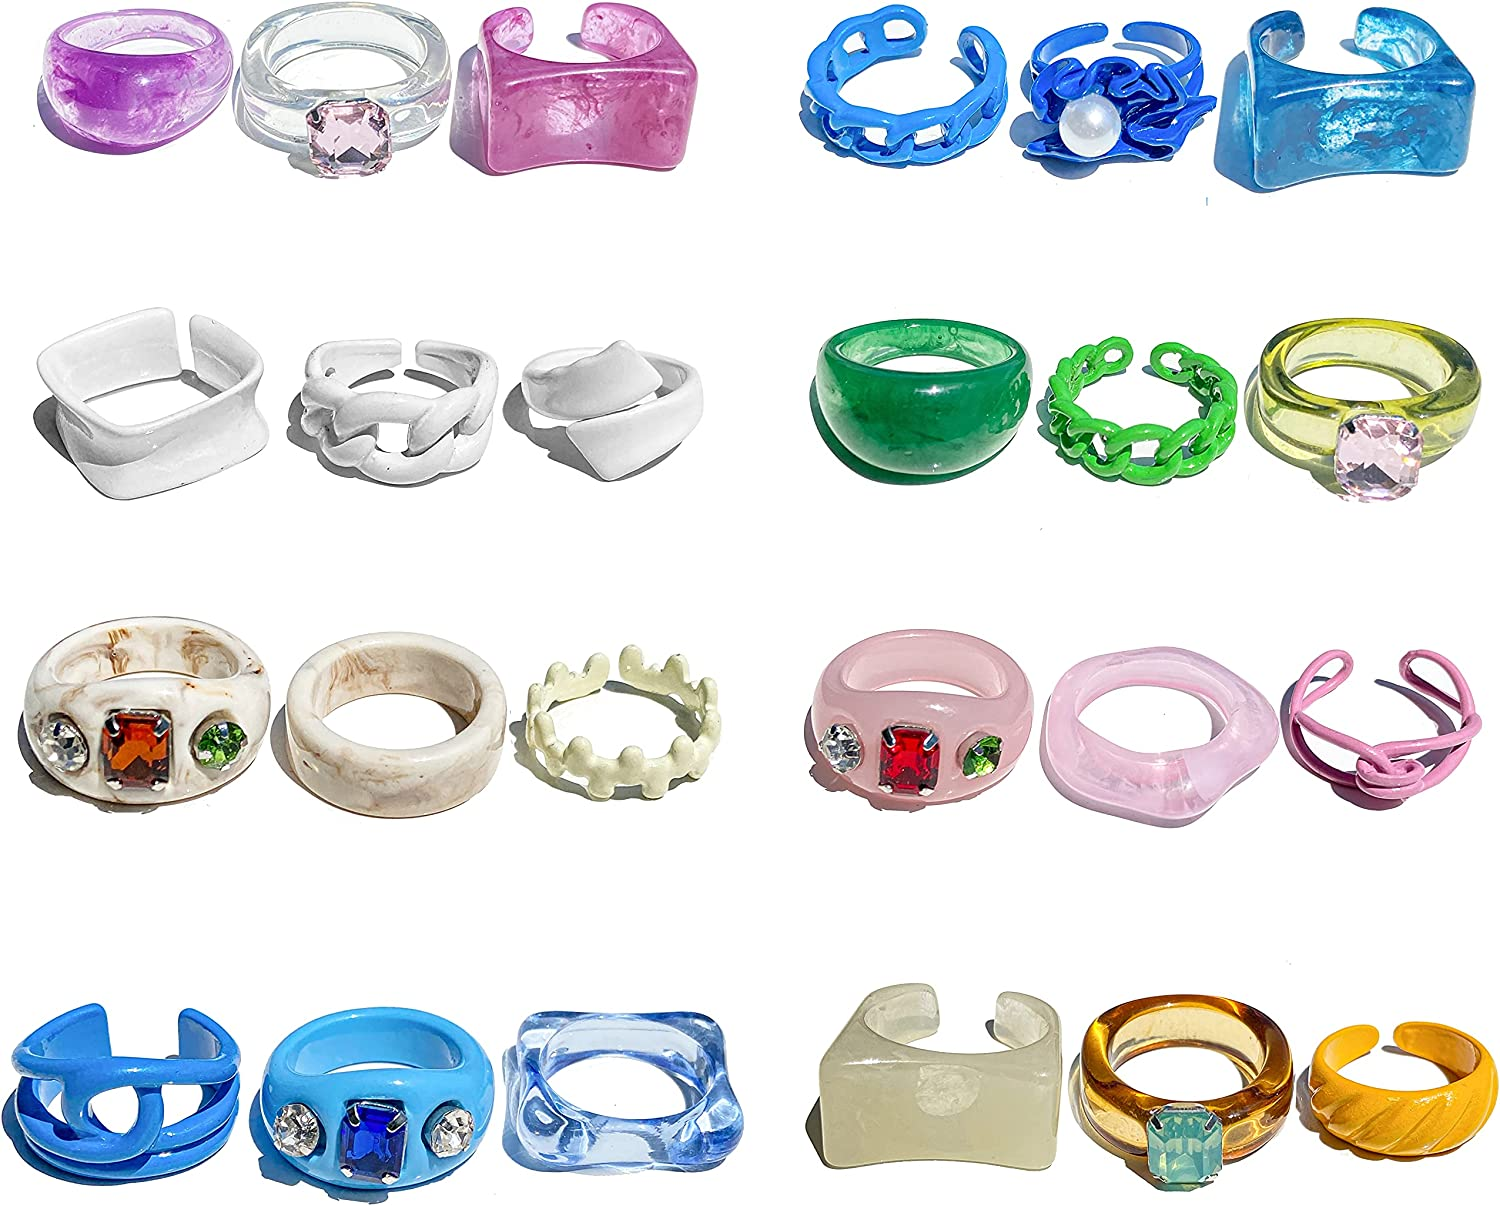 Chunky Resin Acrylic Rings for Women Girl, Chunky Rings Colorful, Statement Plastic Rings,Trendy Funky Open Stackable Finger Knuckle Y2K Rings